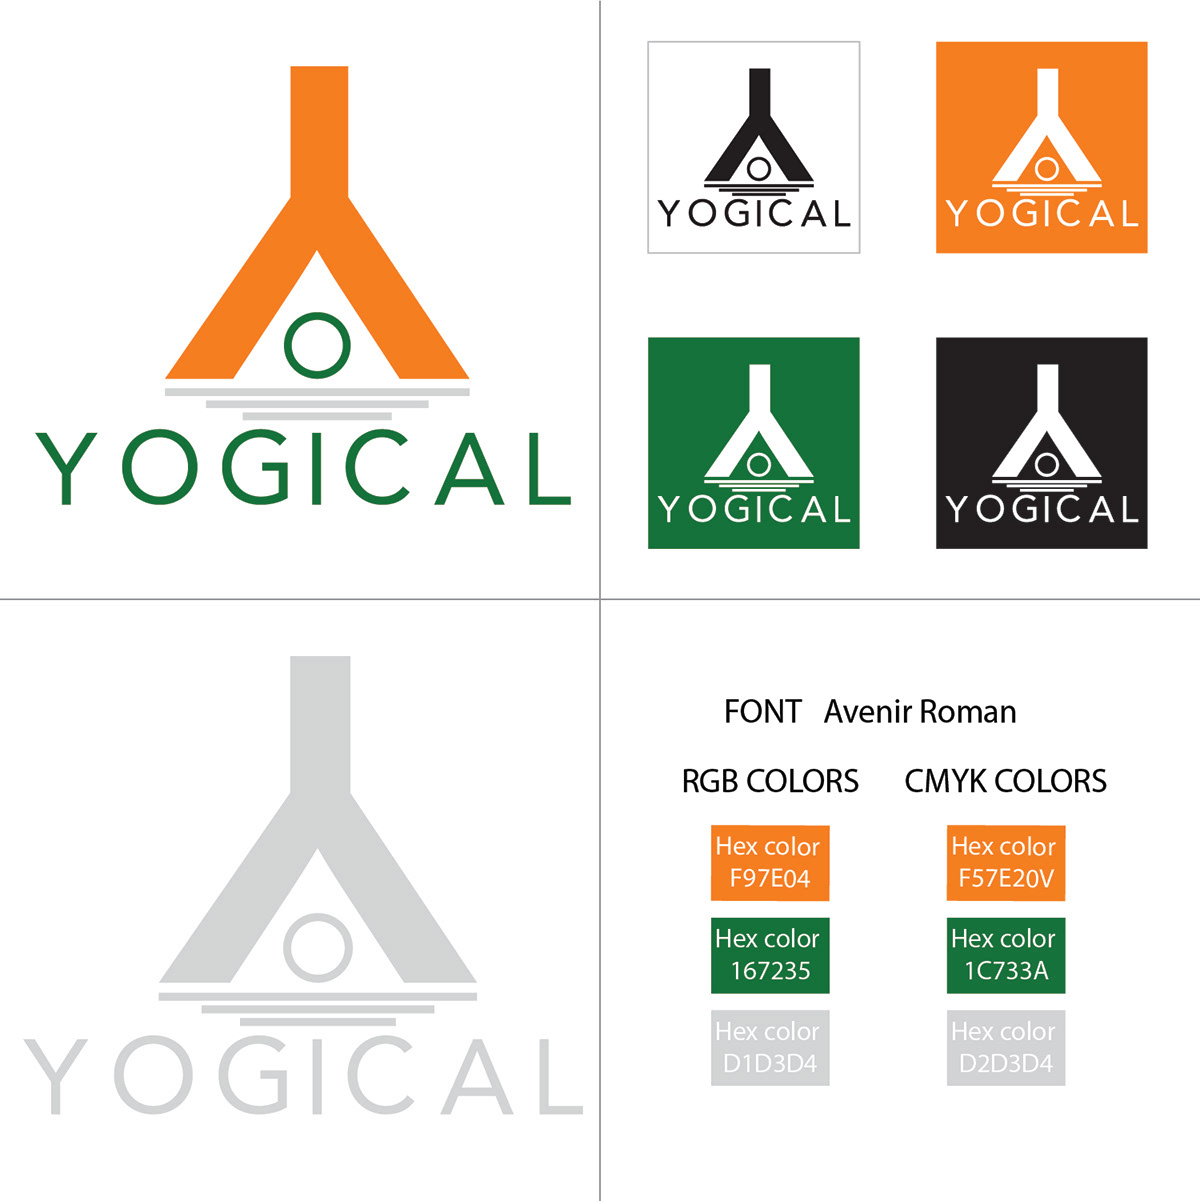 Yogical Body Care Products on Behance